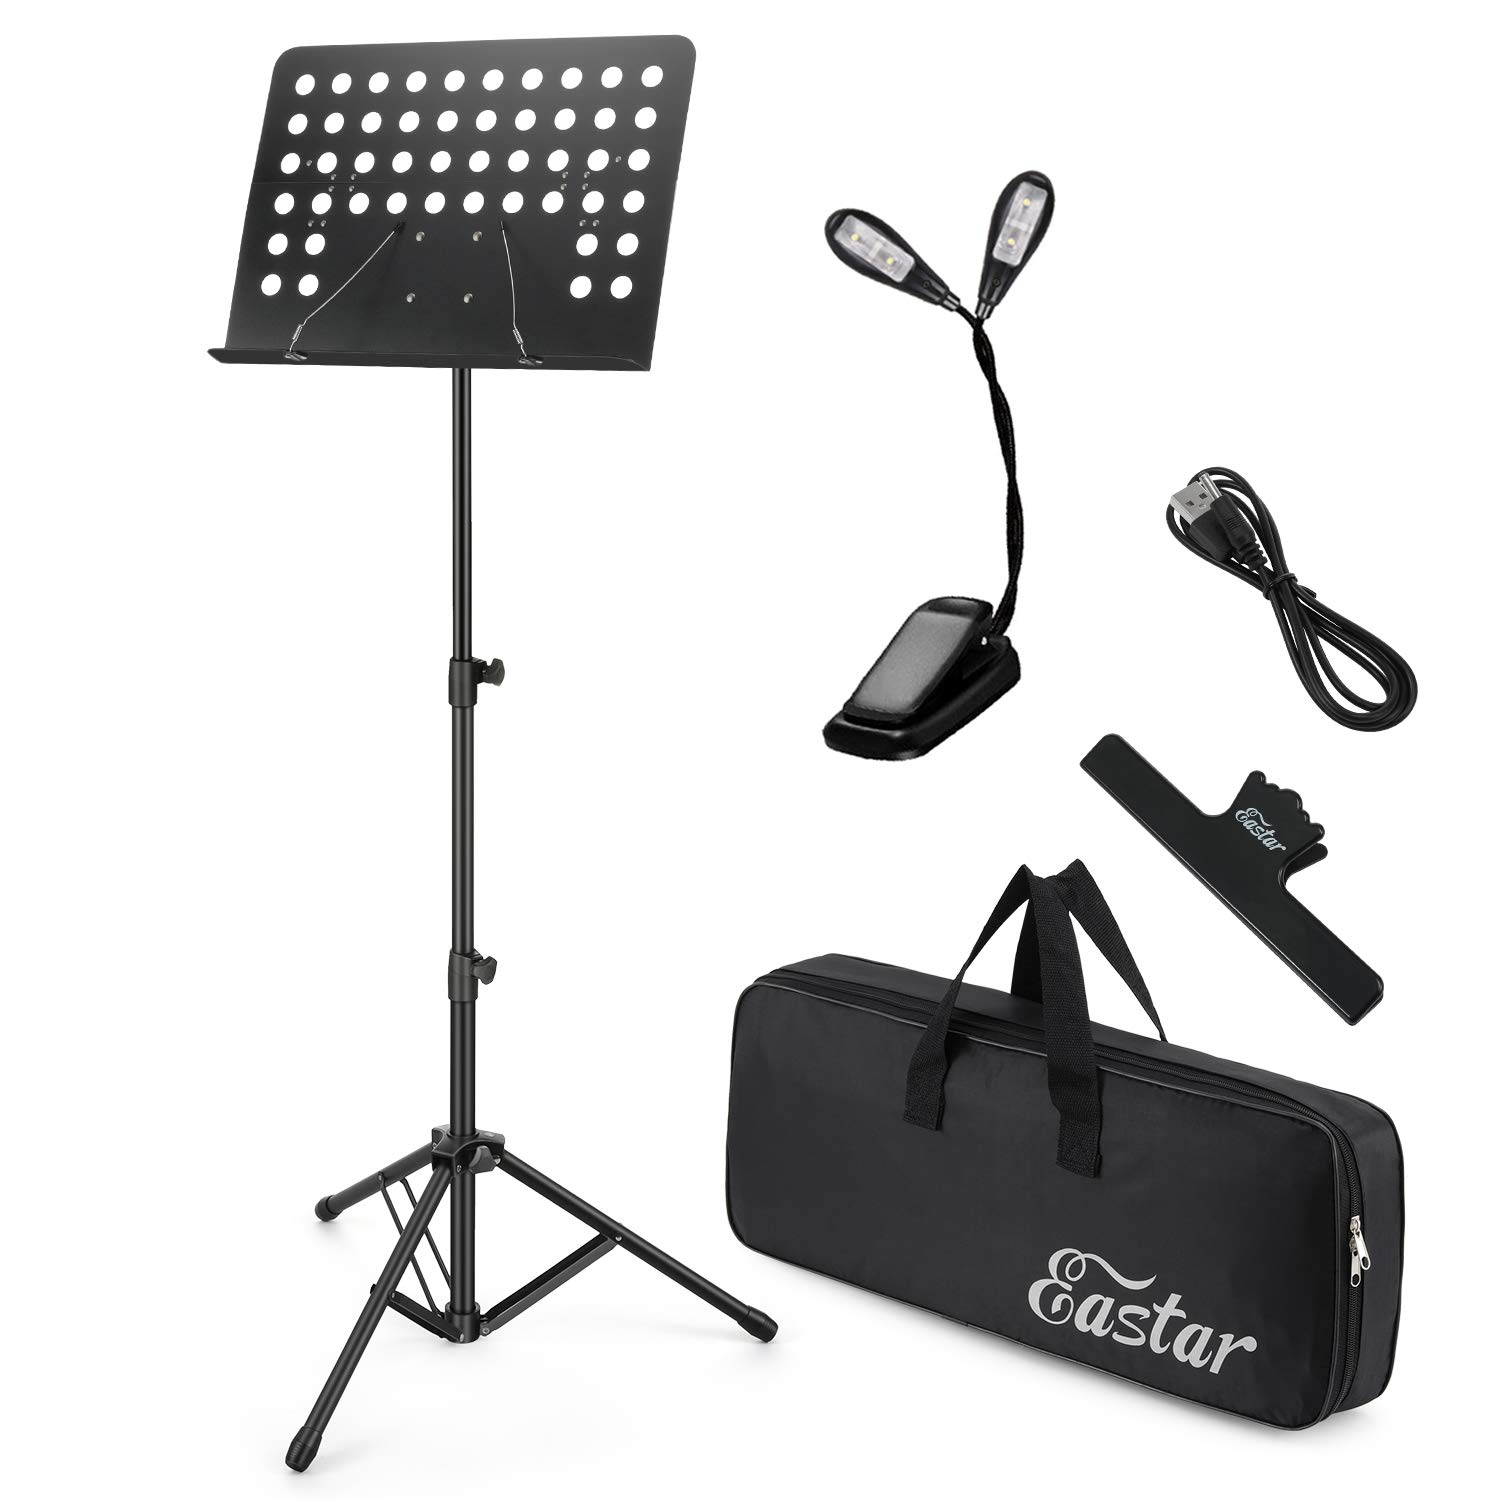 Eastar Folding Sheet Music Stand EMS-1 Portable Metal Stand Kit With Light Carrying Bag Black